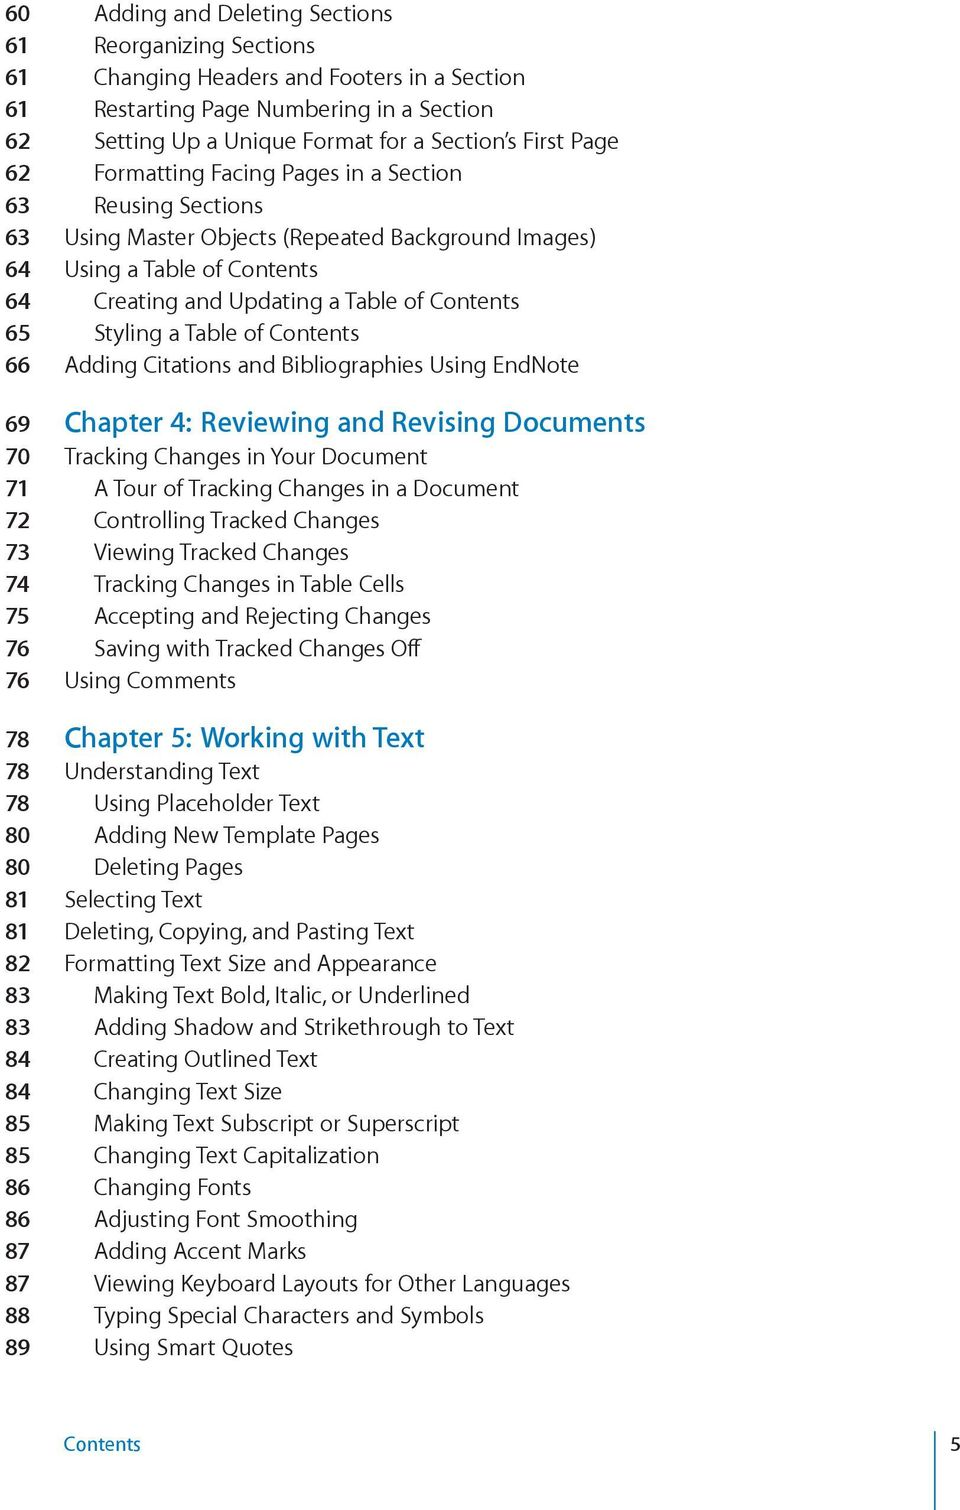 Styling a Table of Contents 66 Adding Citations and Bibliographies Using EndNote 69 Chapter 4: Reviewing and Revising Documents 70 Tracking Changes in Your Document 71 A Tour of Tracking Changes in a